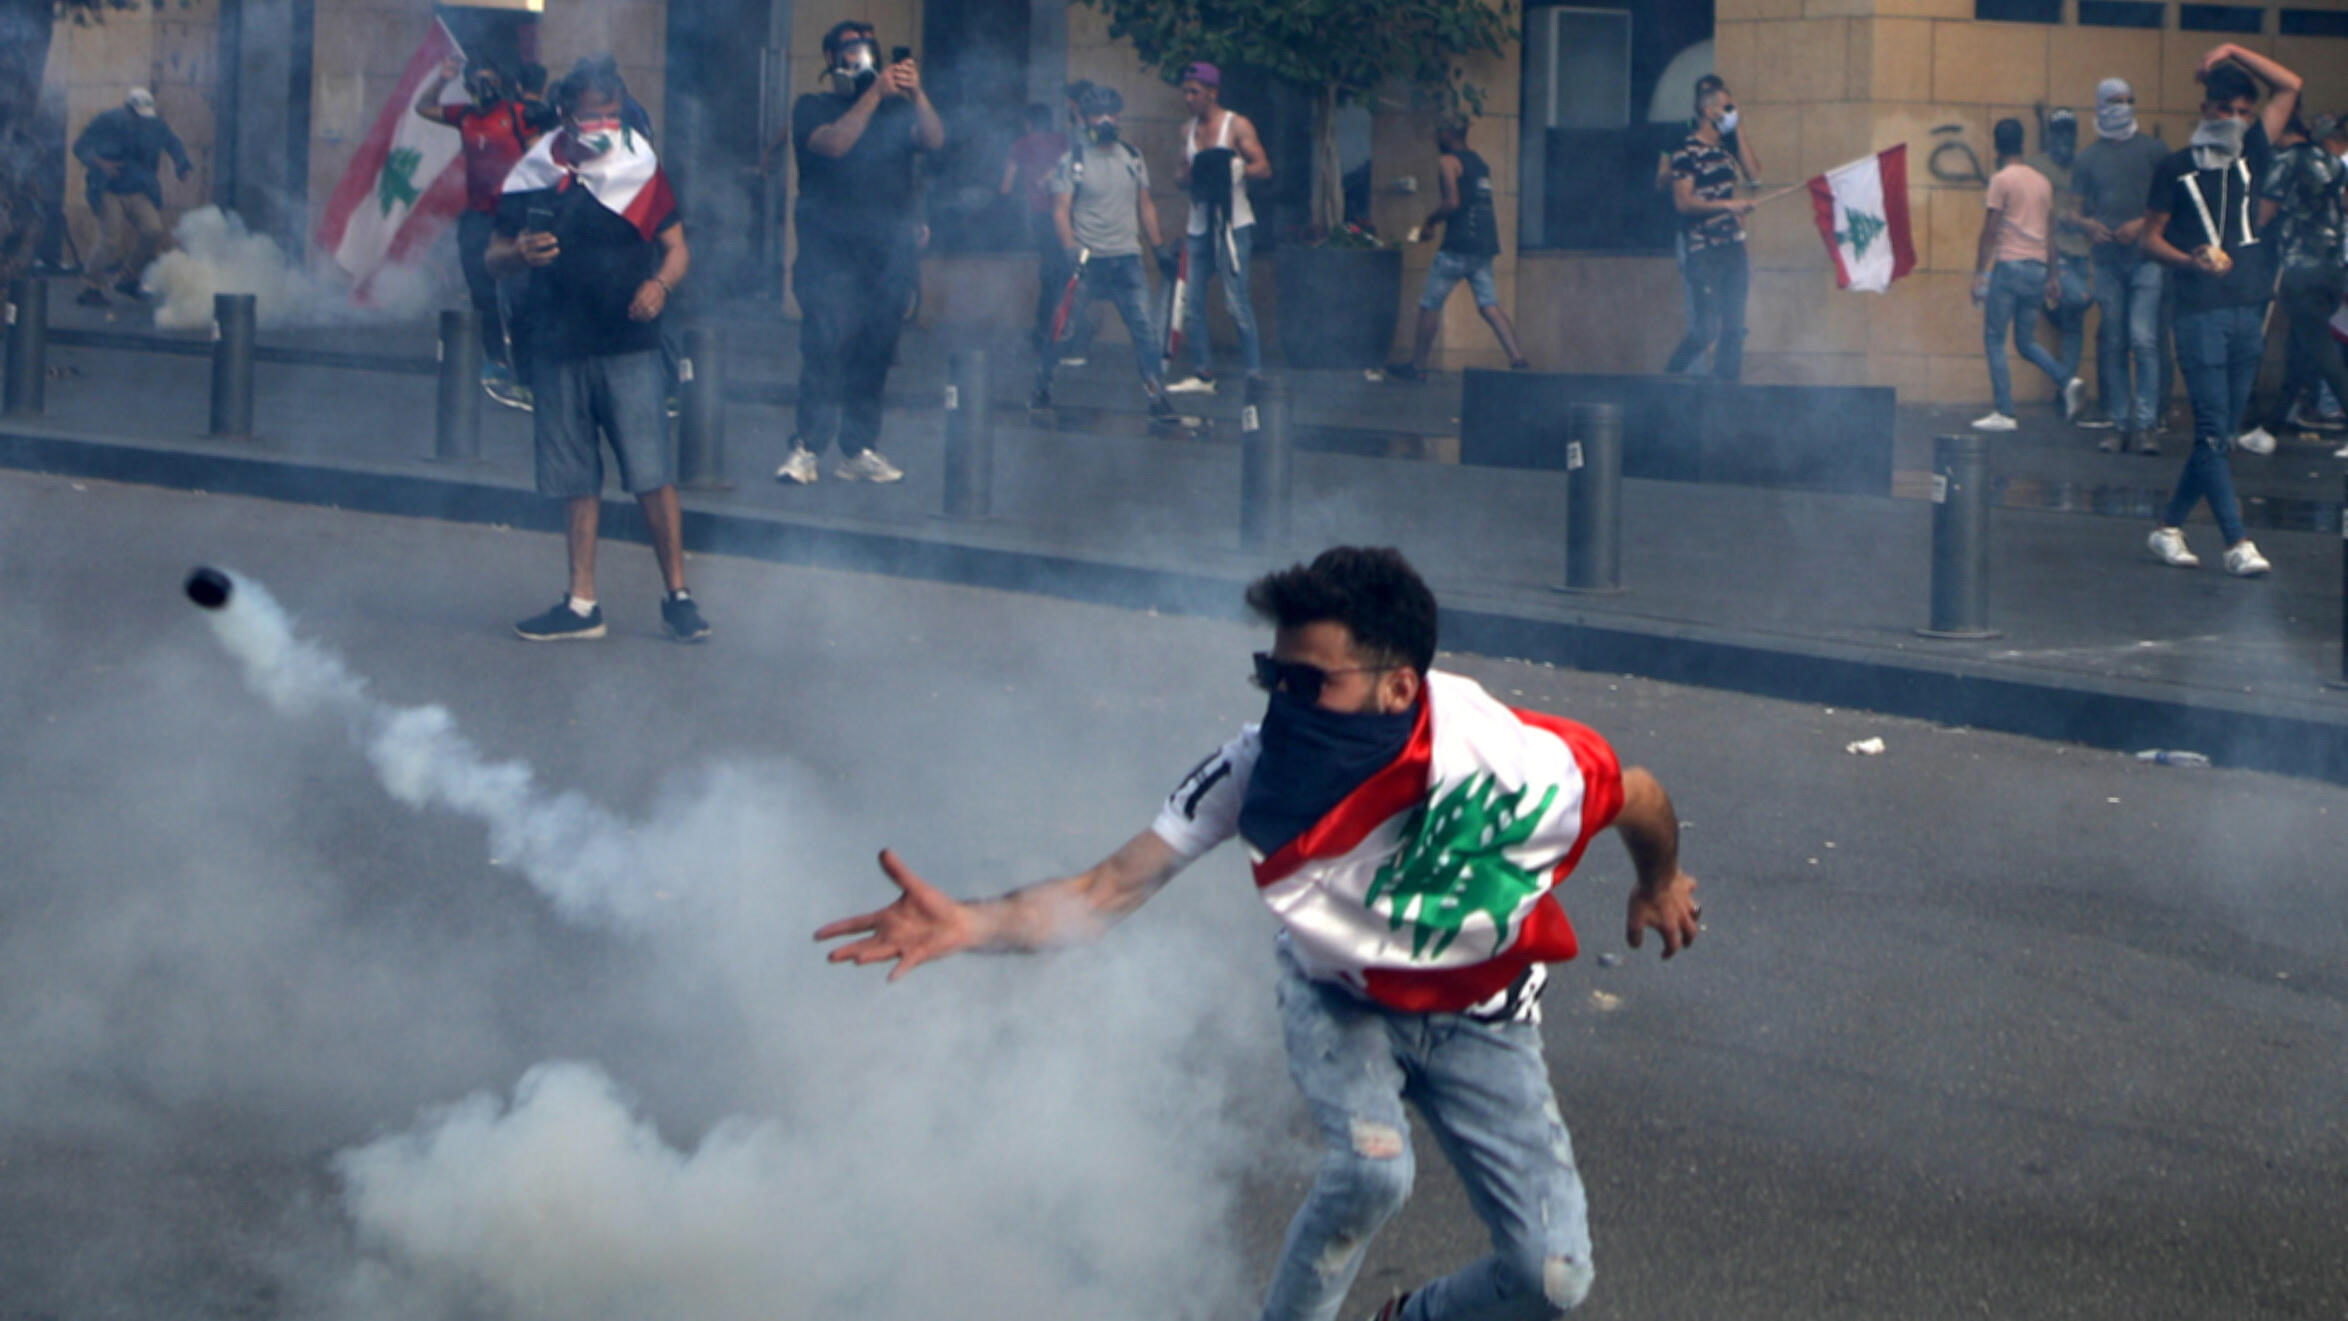 A Lebanese protester throws back a tear gas canister amid clashes with riot police following a demonstration in central Beirut, on June 6, 2020.